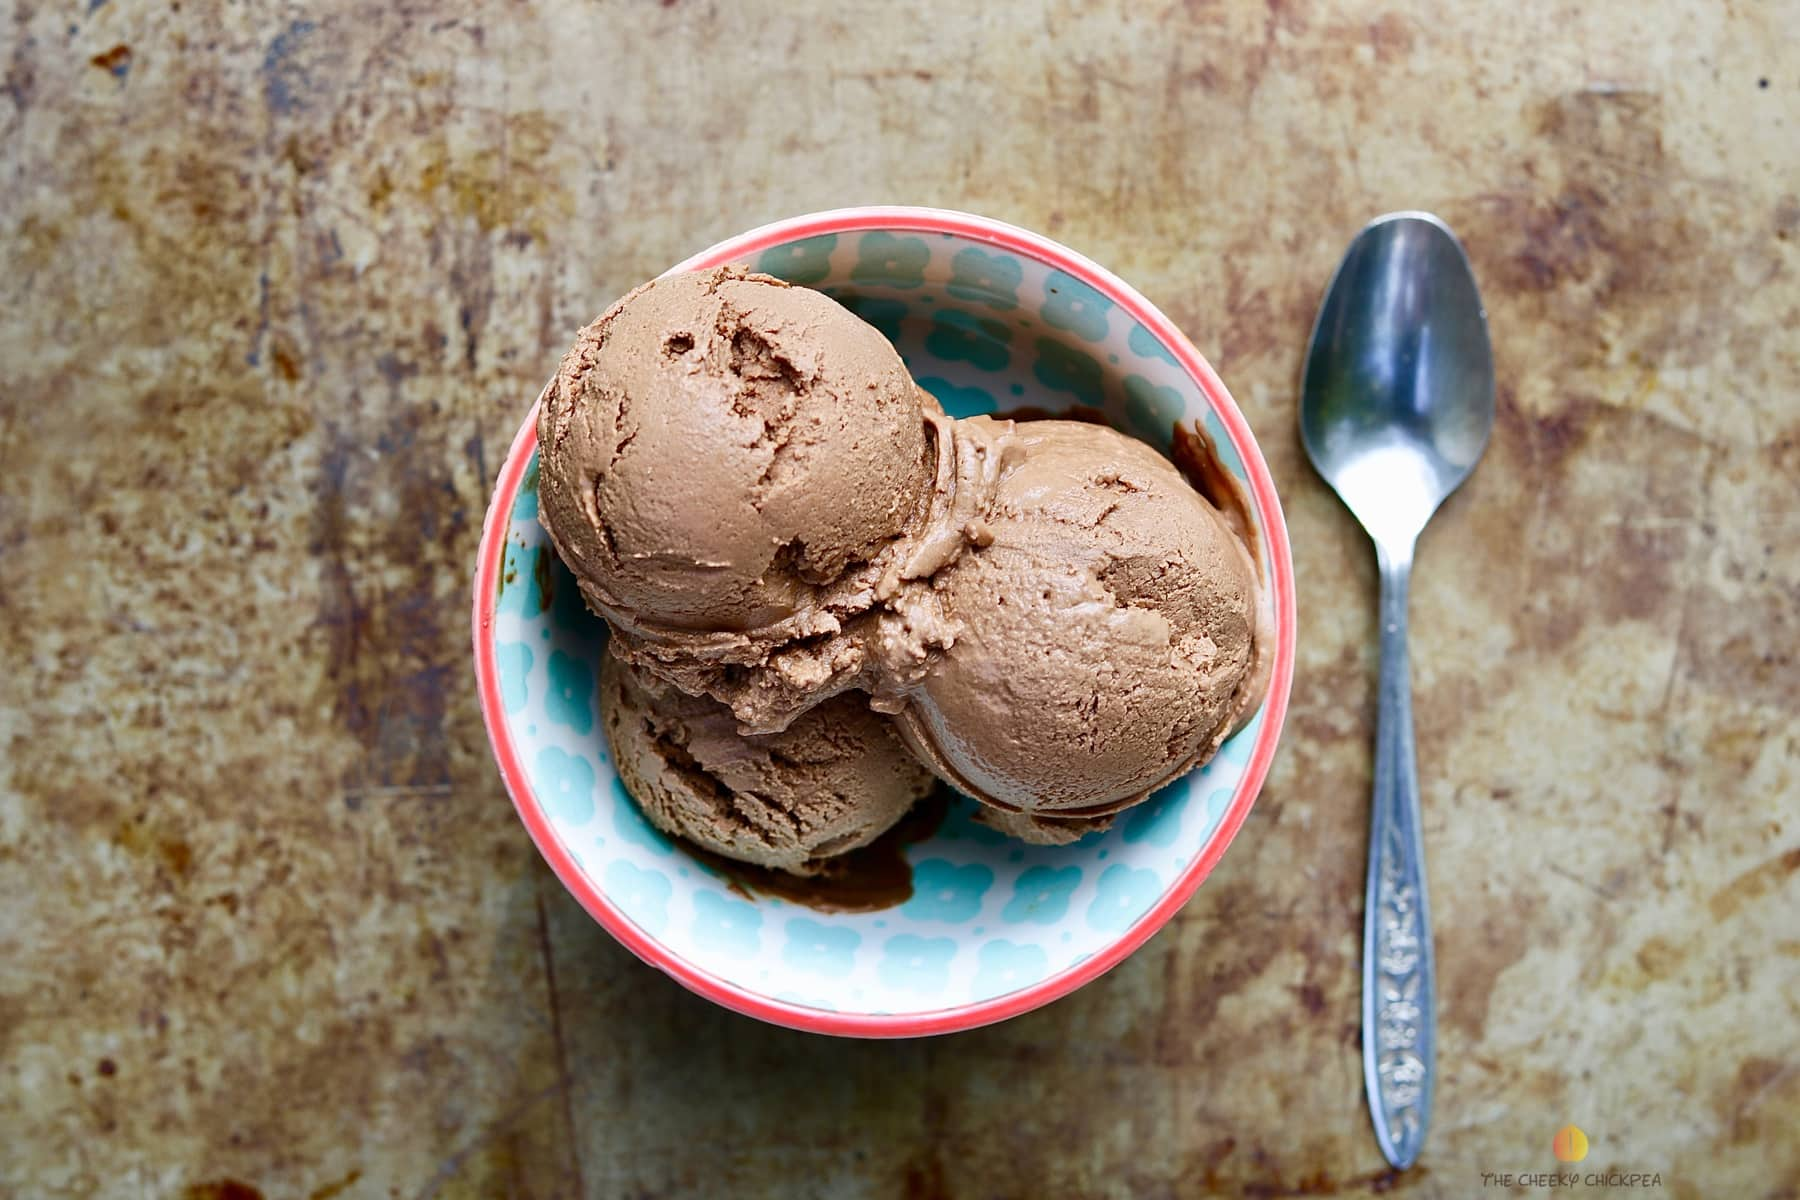 Amazing chocolate malted vegan ice cream in a blue bowl on a baking sheet